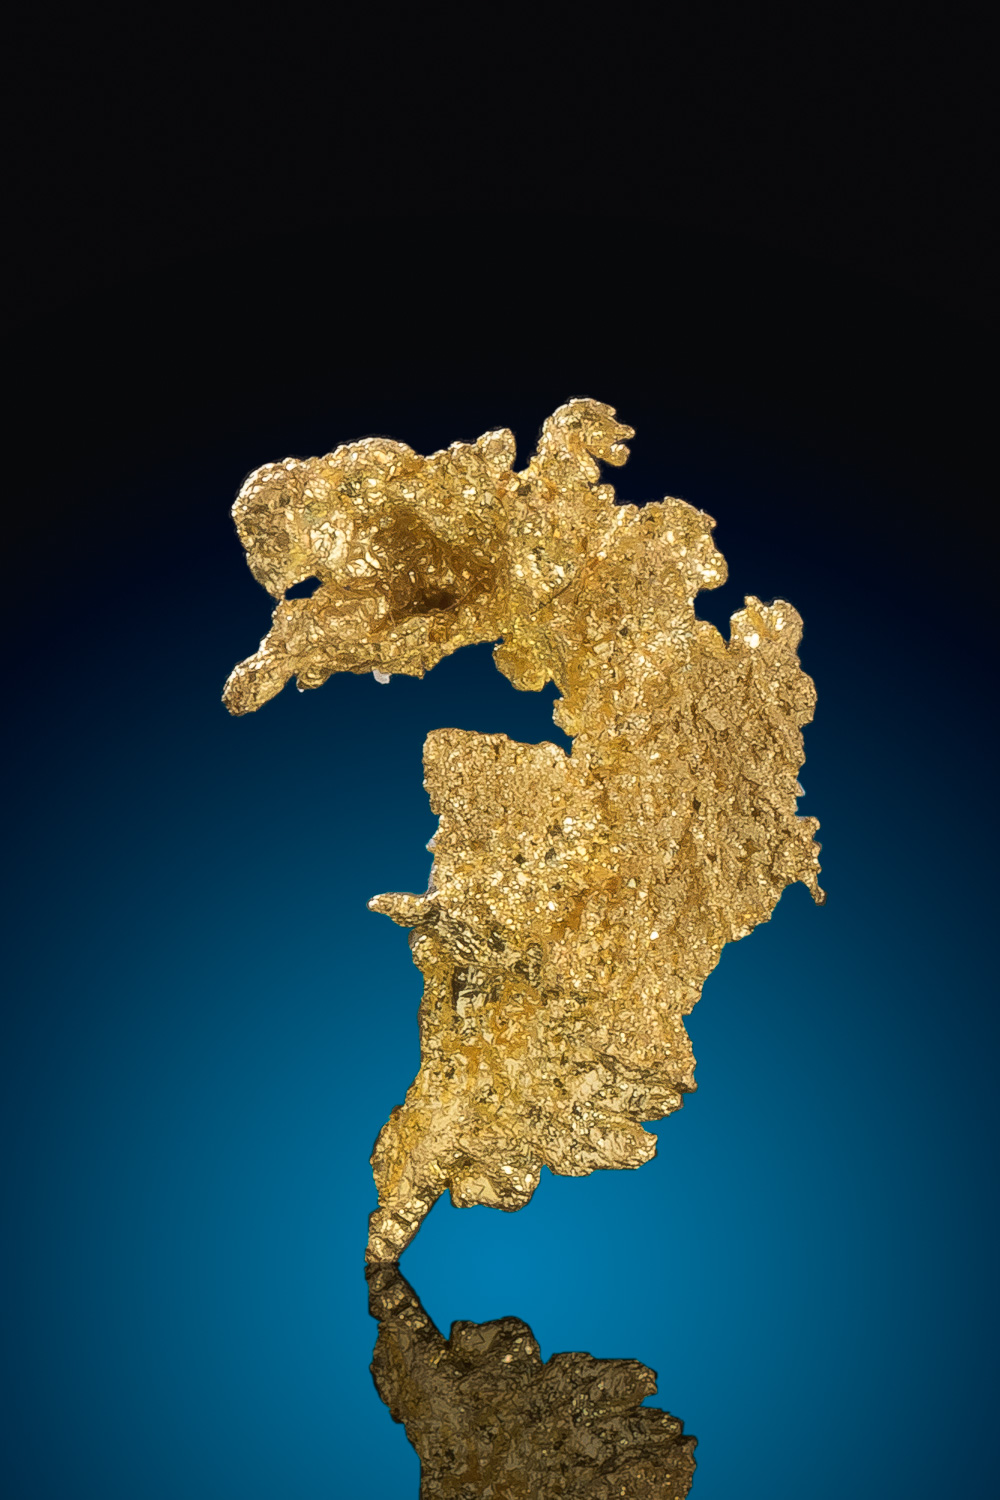 Unique Curved Crystalline Gold Nugget - Eagels Nest Gold Mine